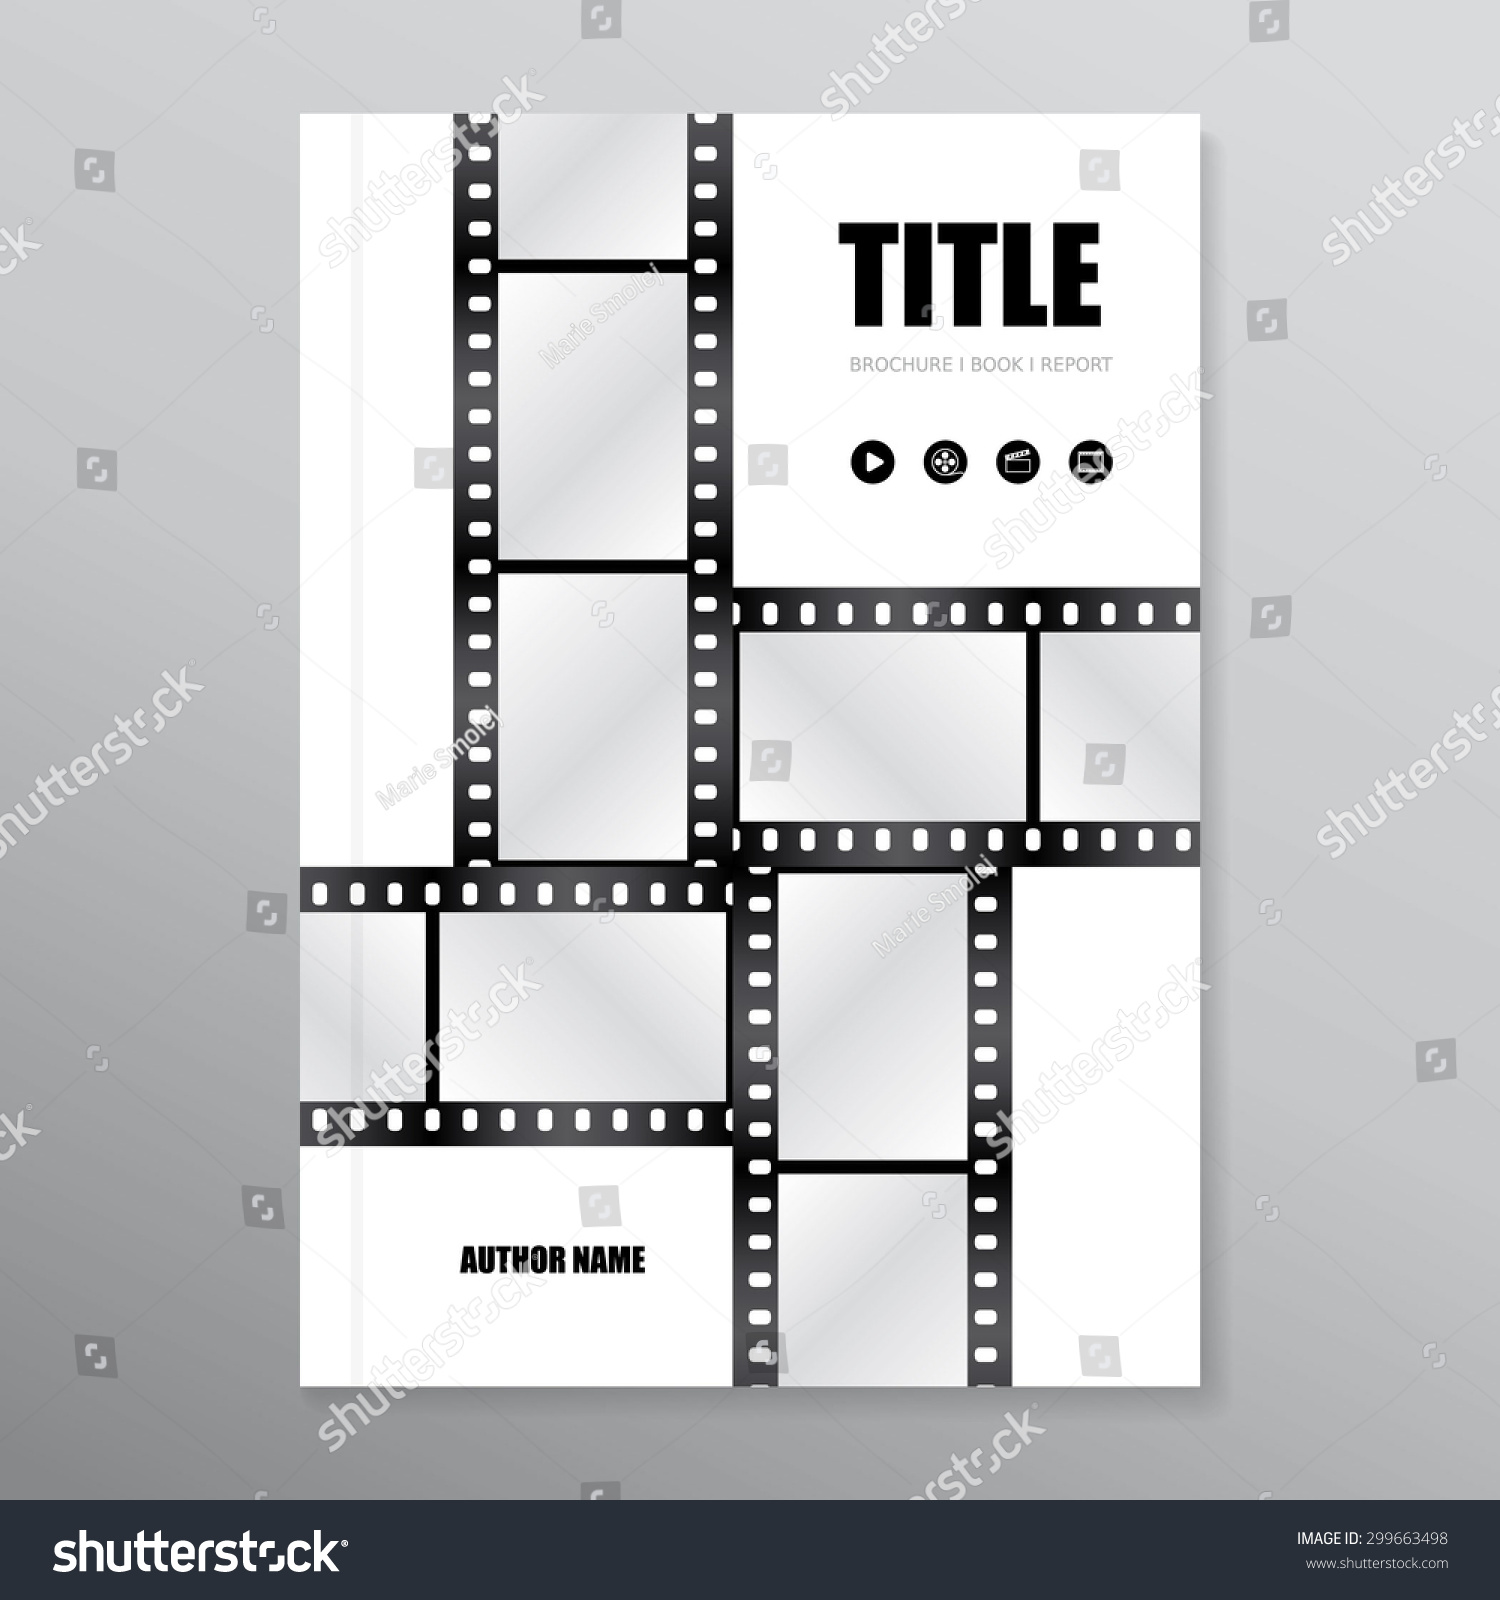 book brochure template - download film festival brochure template gantt chart